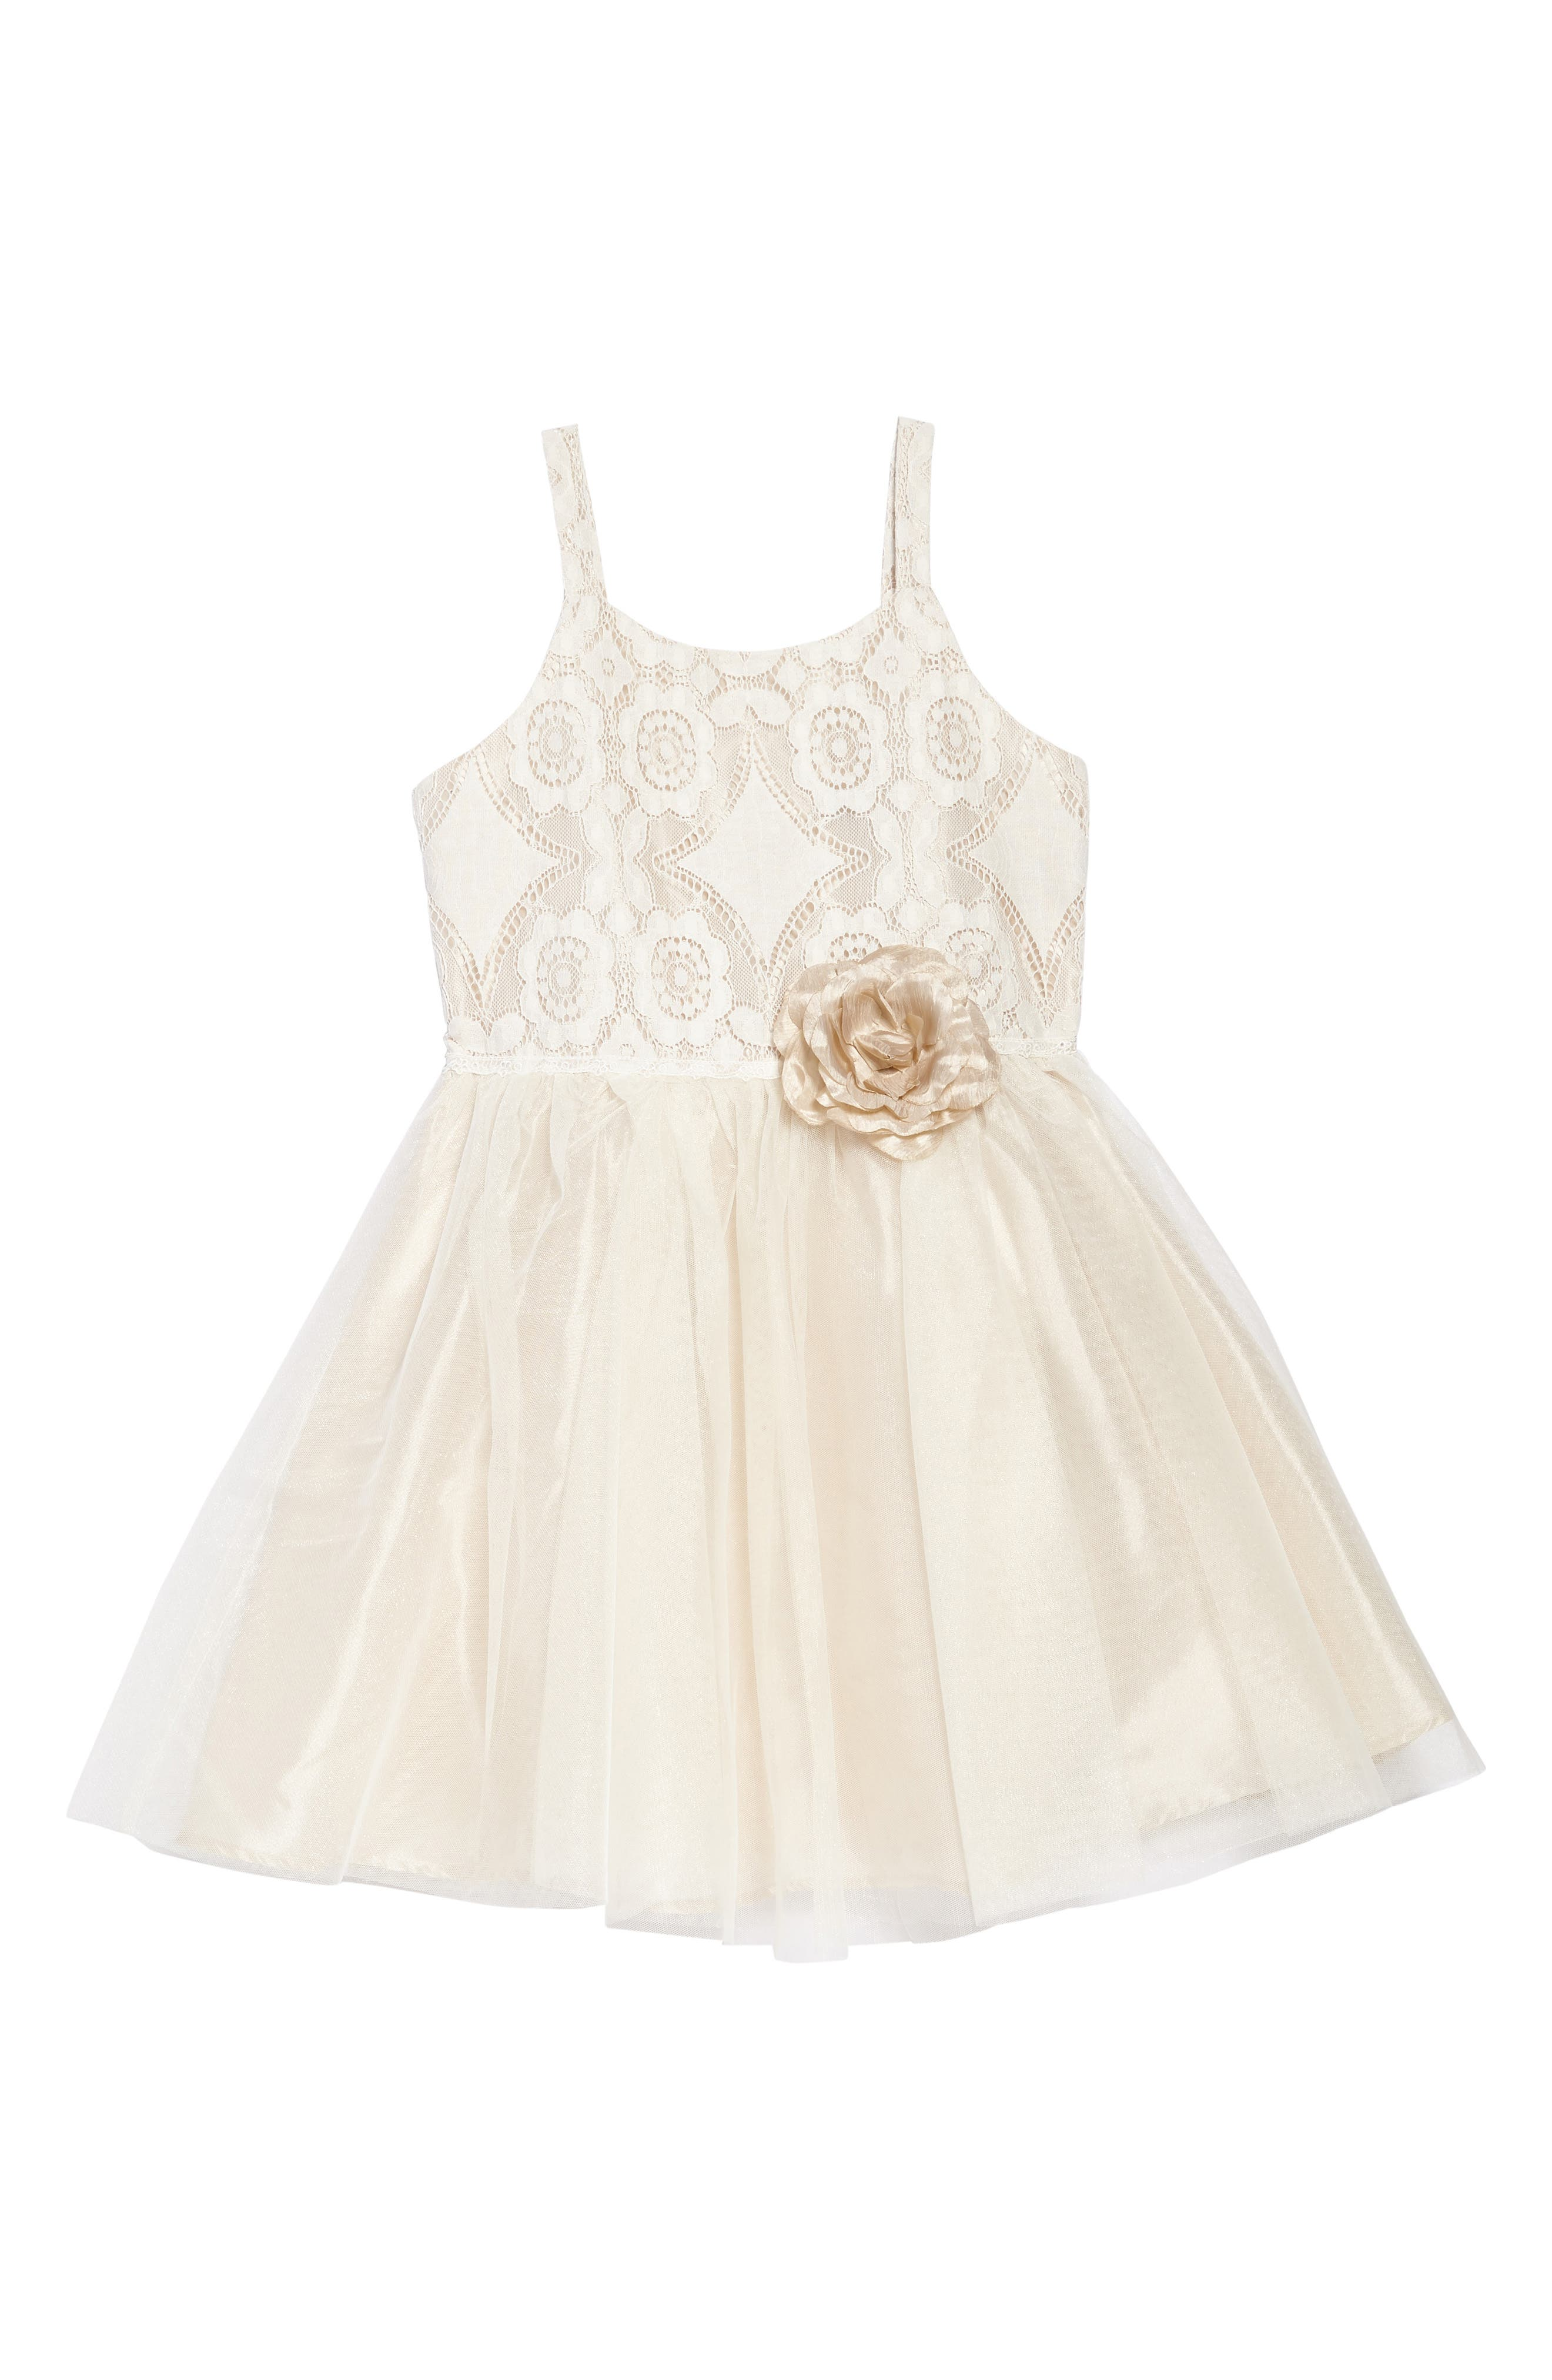 Main Image - Zunie Lace & Tulle Party Dress (Big Girls)